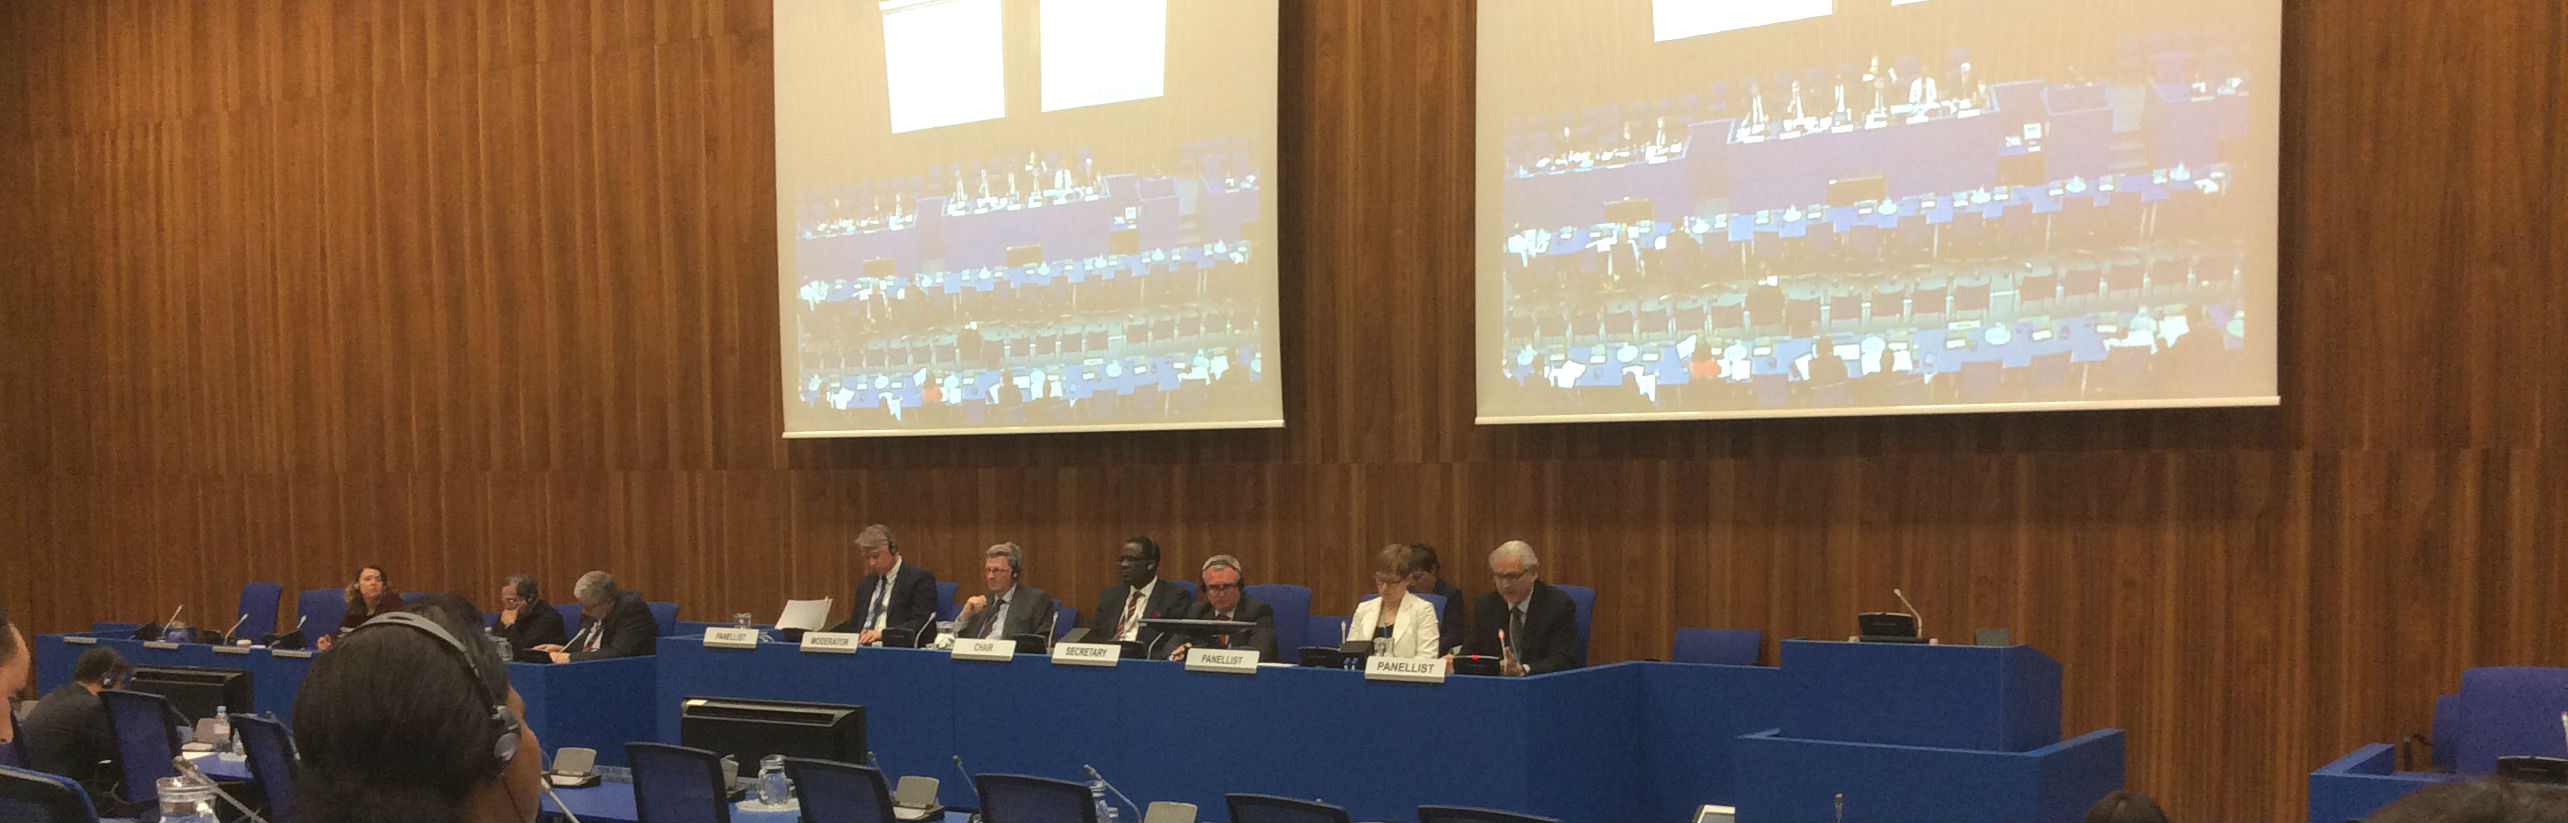 workshop of the United Nations Crime Prevention and Criminal Justice Programme Network of Institutes